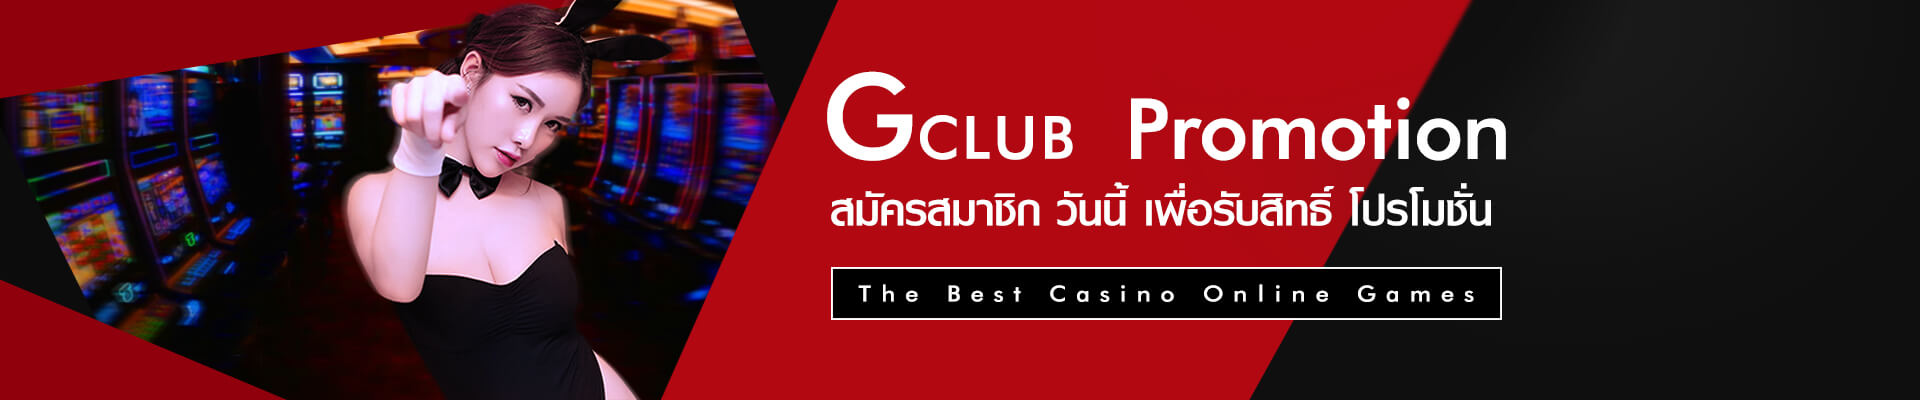 Gclub Promotion Banner